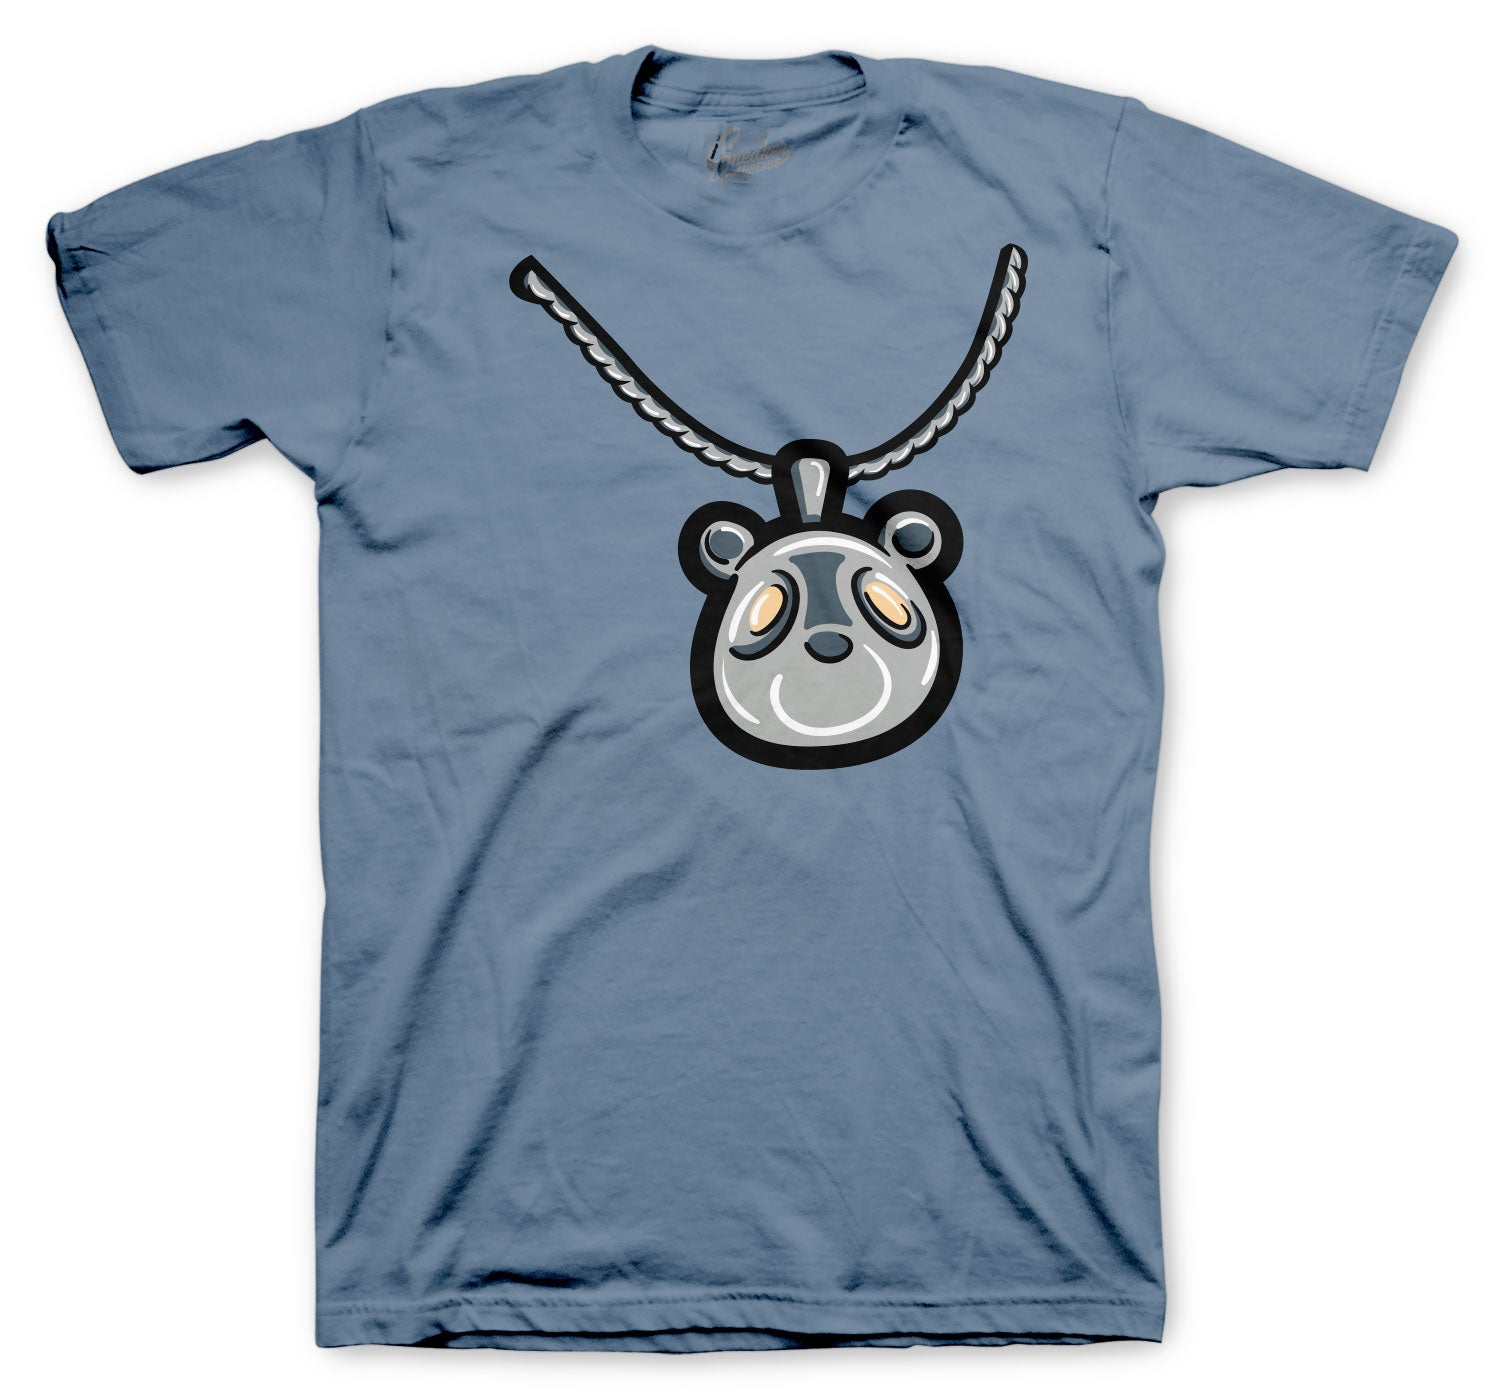 Yeezy 350 Ash Blue Bear Charm Shirt